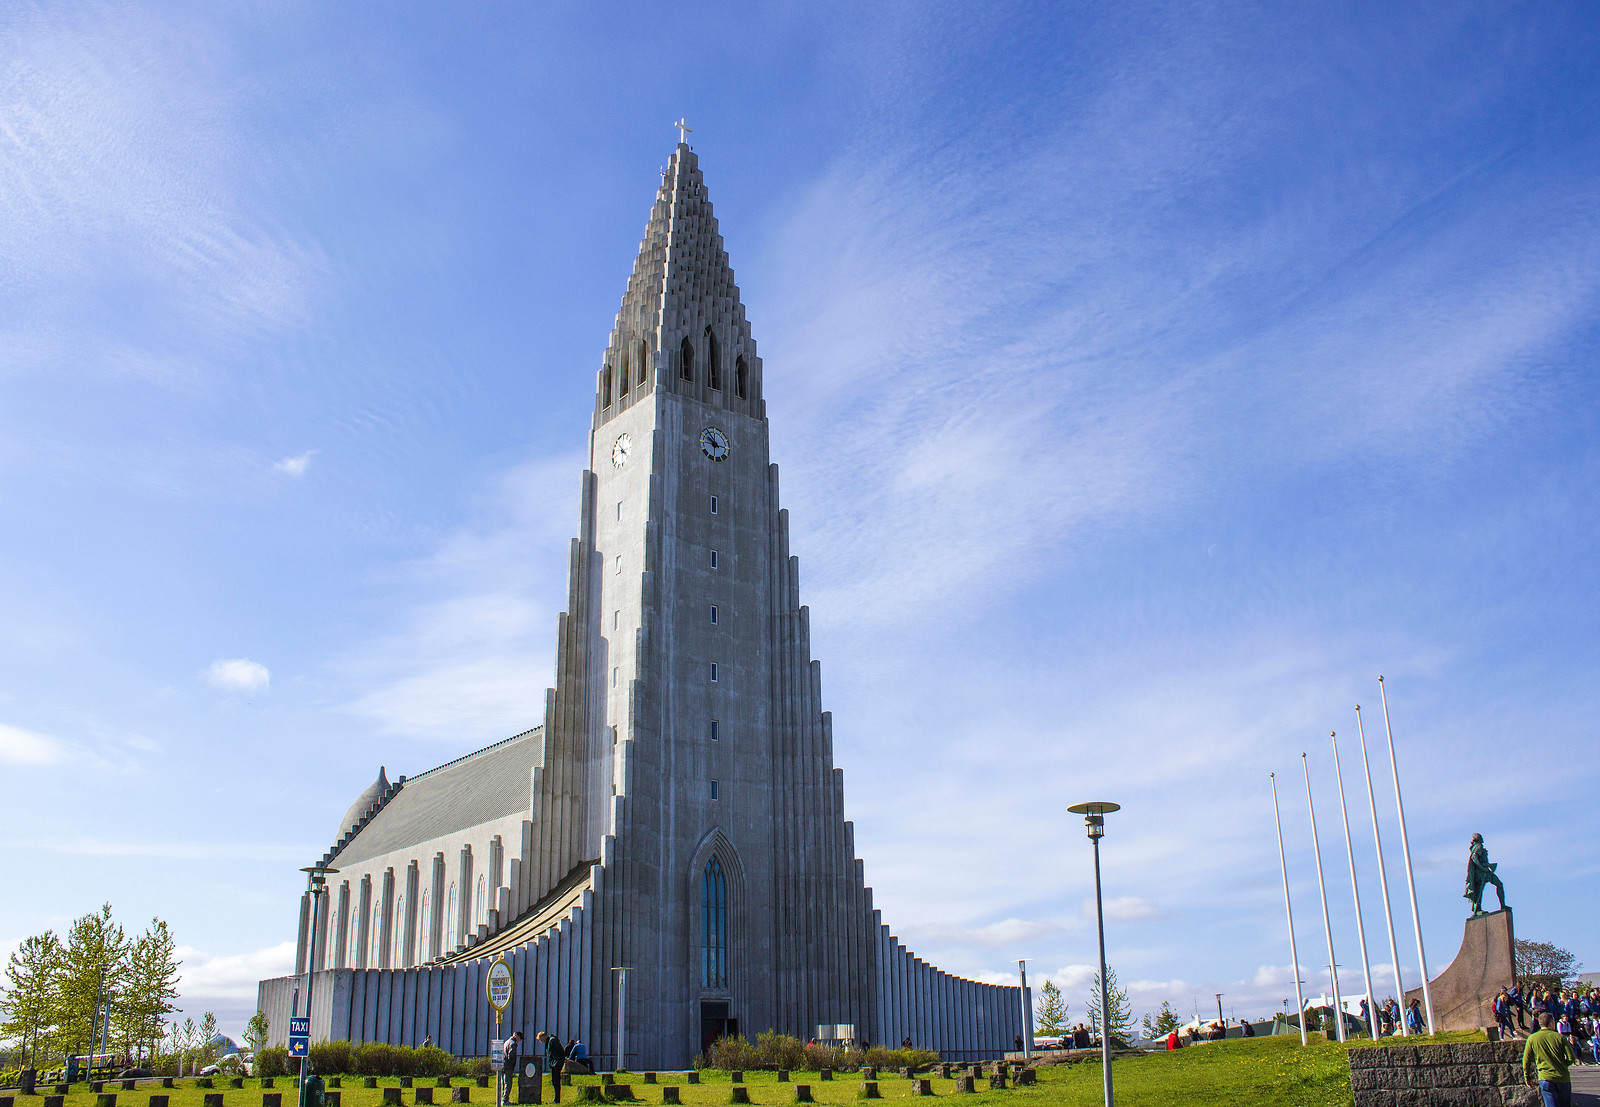 Iceland 2 Week Itinerary - A Complete Travel Guide - Iceland Travel Itinerary - Hallgrimskirkja Church